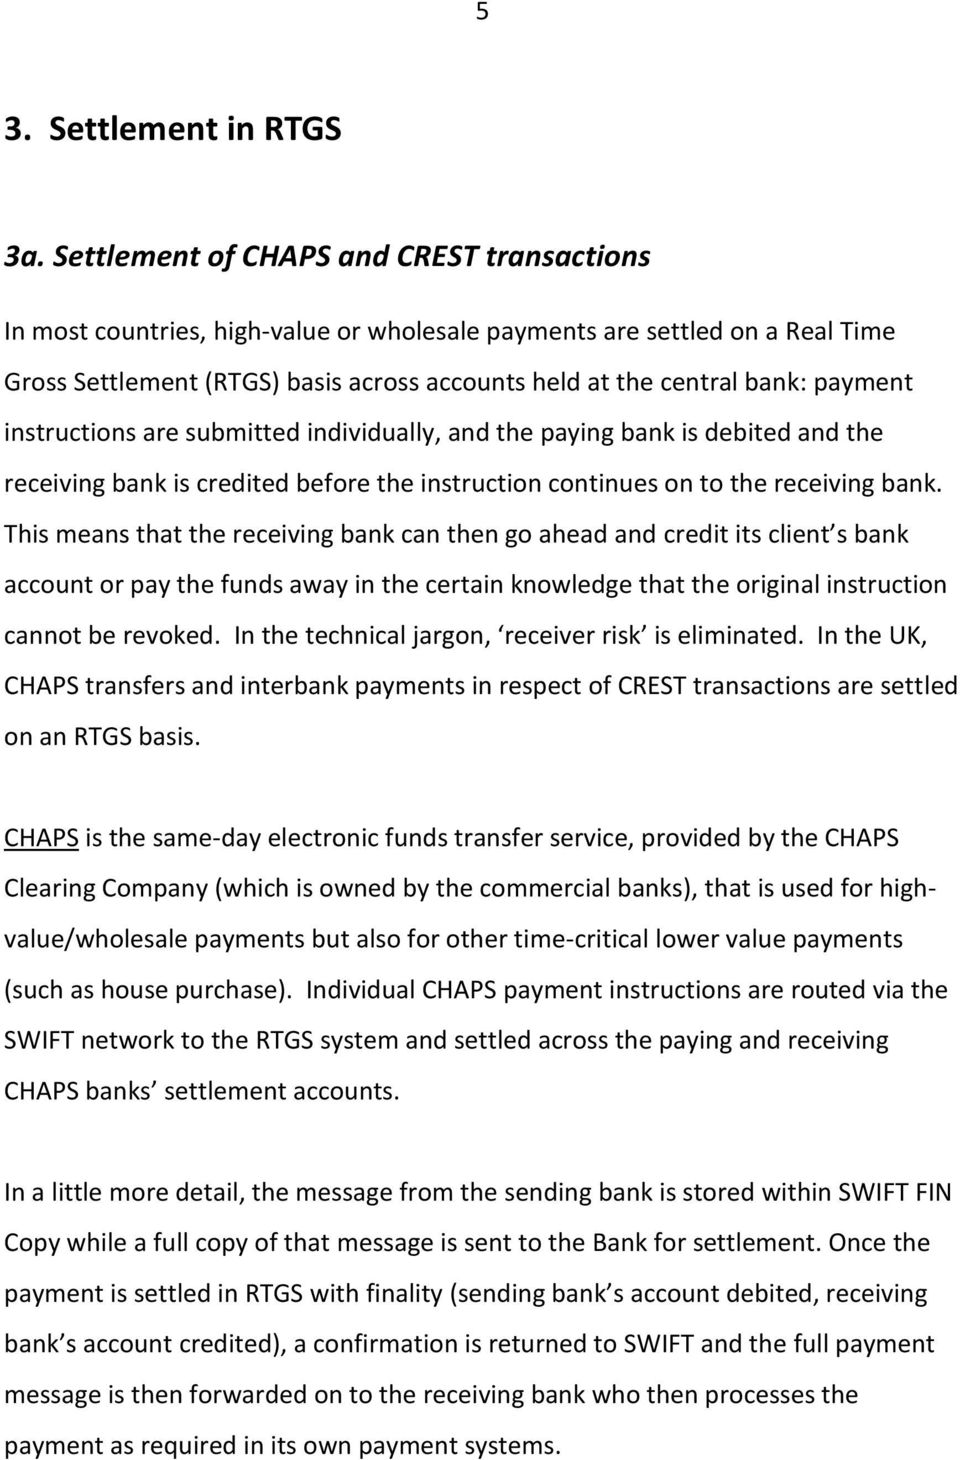 payment instructions are submitted individually, and the paying bank is debited and the receiving bank is credited before the instruction continues on to the receiving bank.